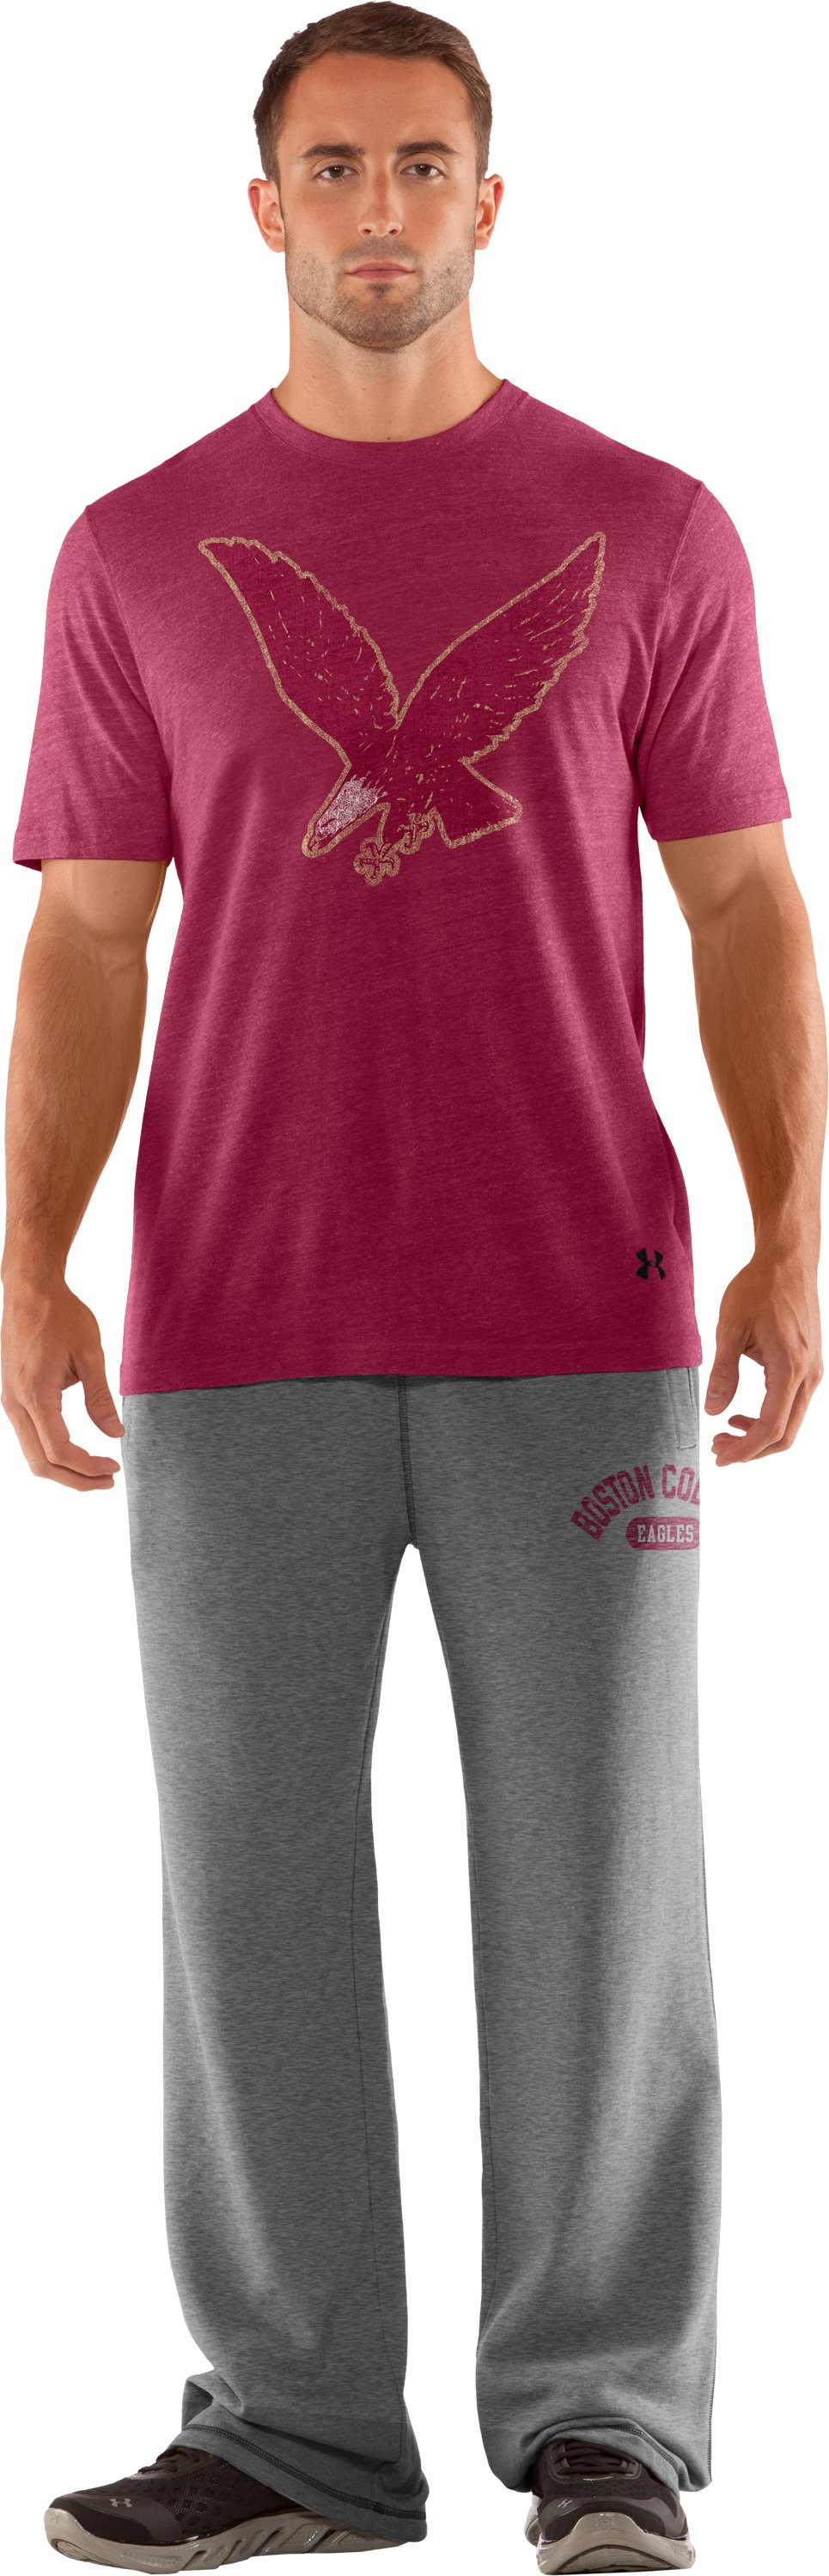 Men's Boston College Under Armour® Legacy Pants, True Gray Heather, Front